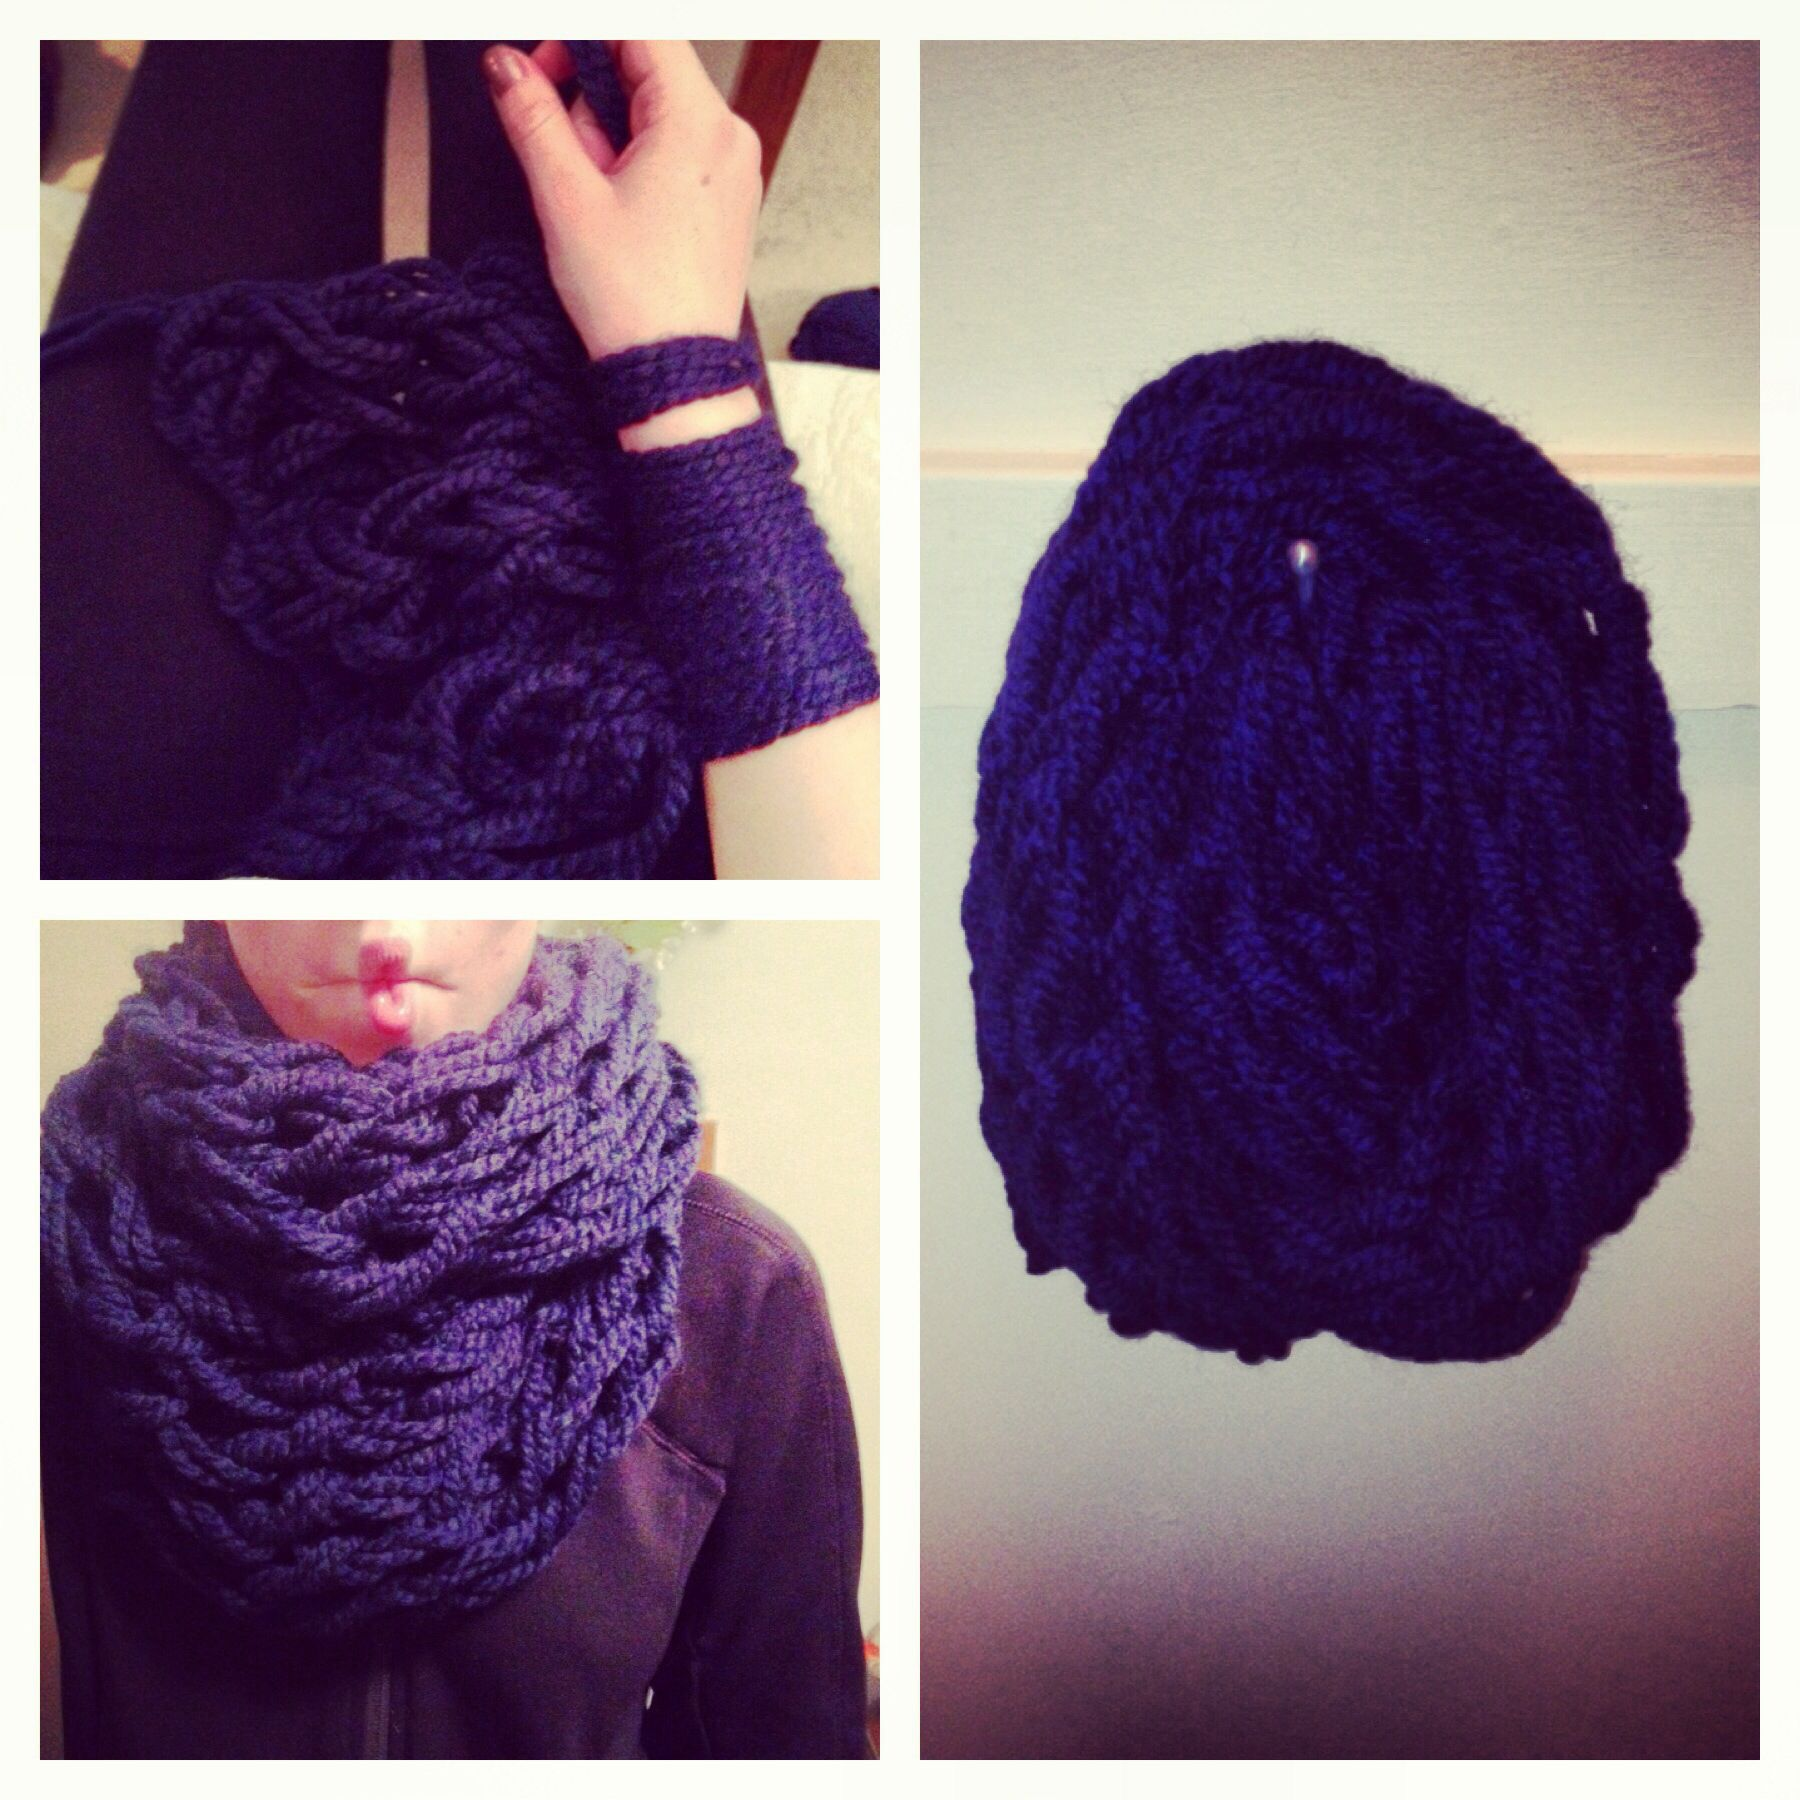 My very own arm knitted scarf! Fun DIY